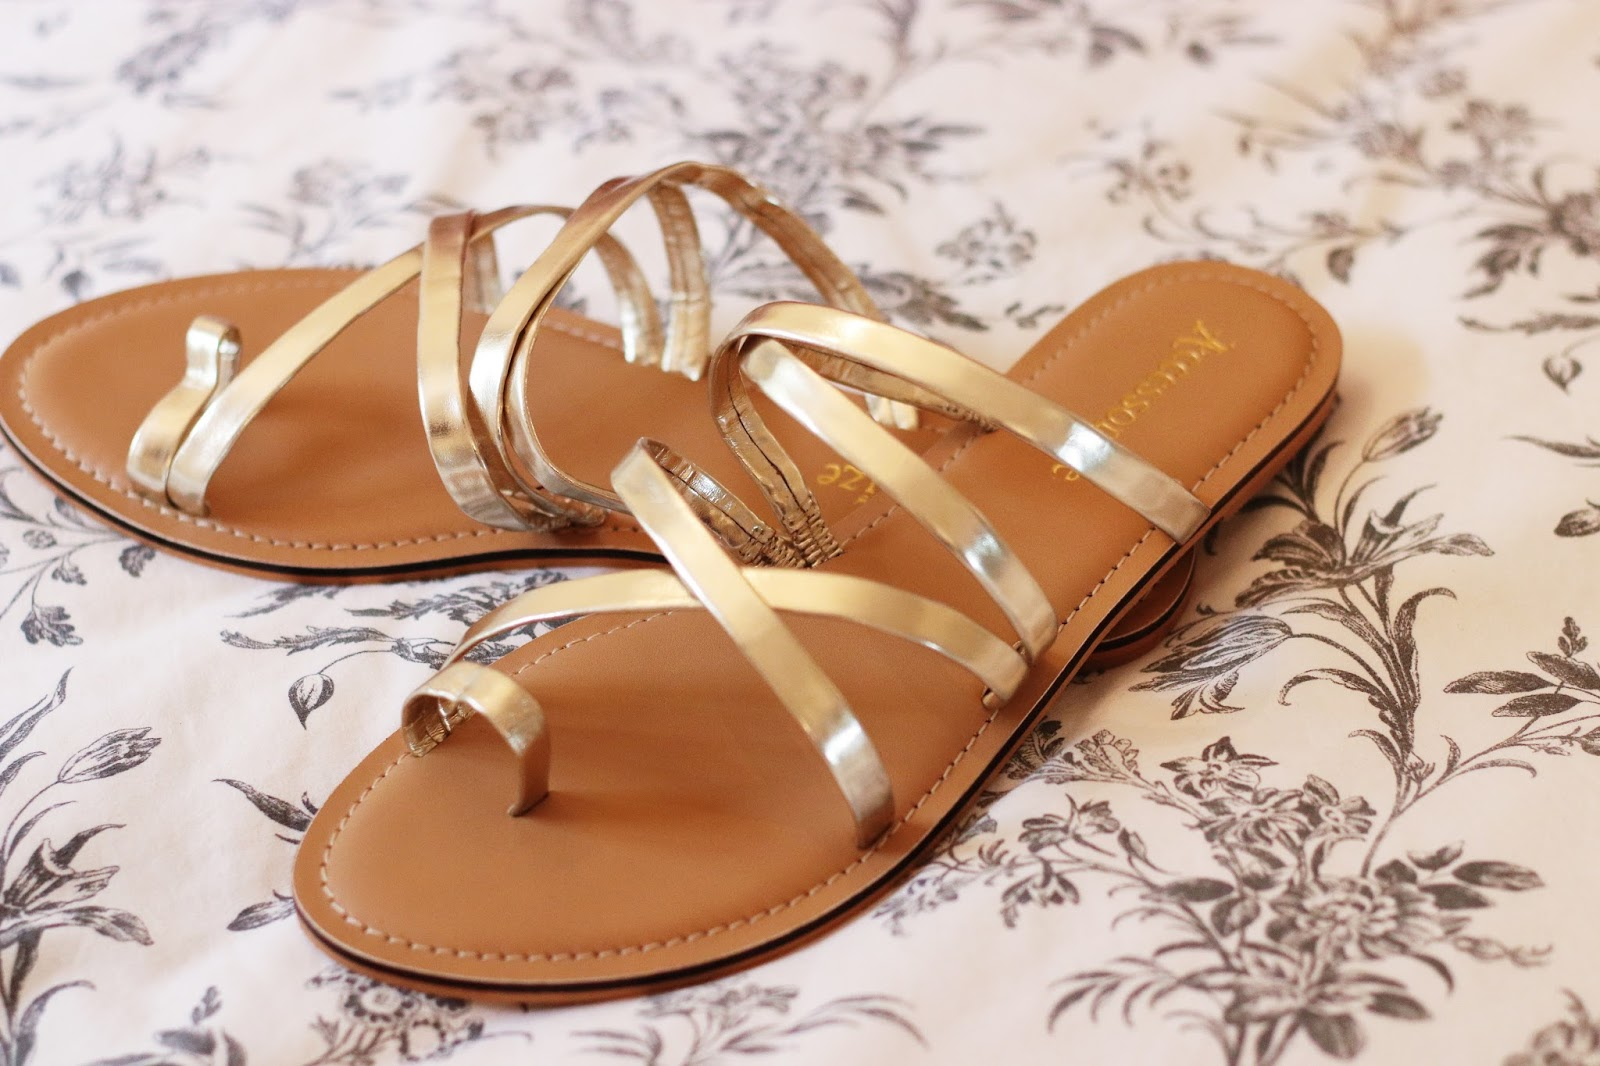 GOLD METALLIC SANDALS